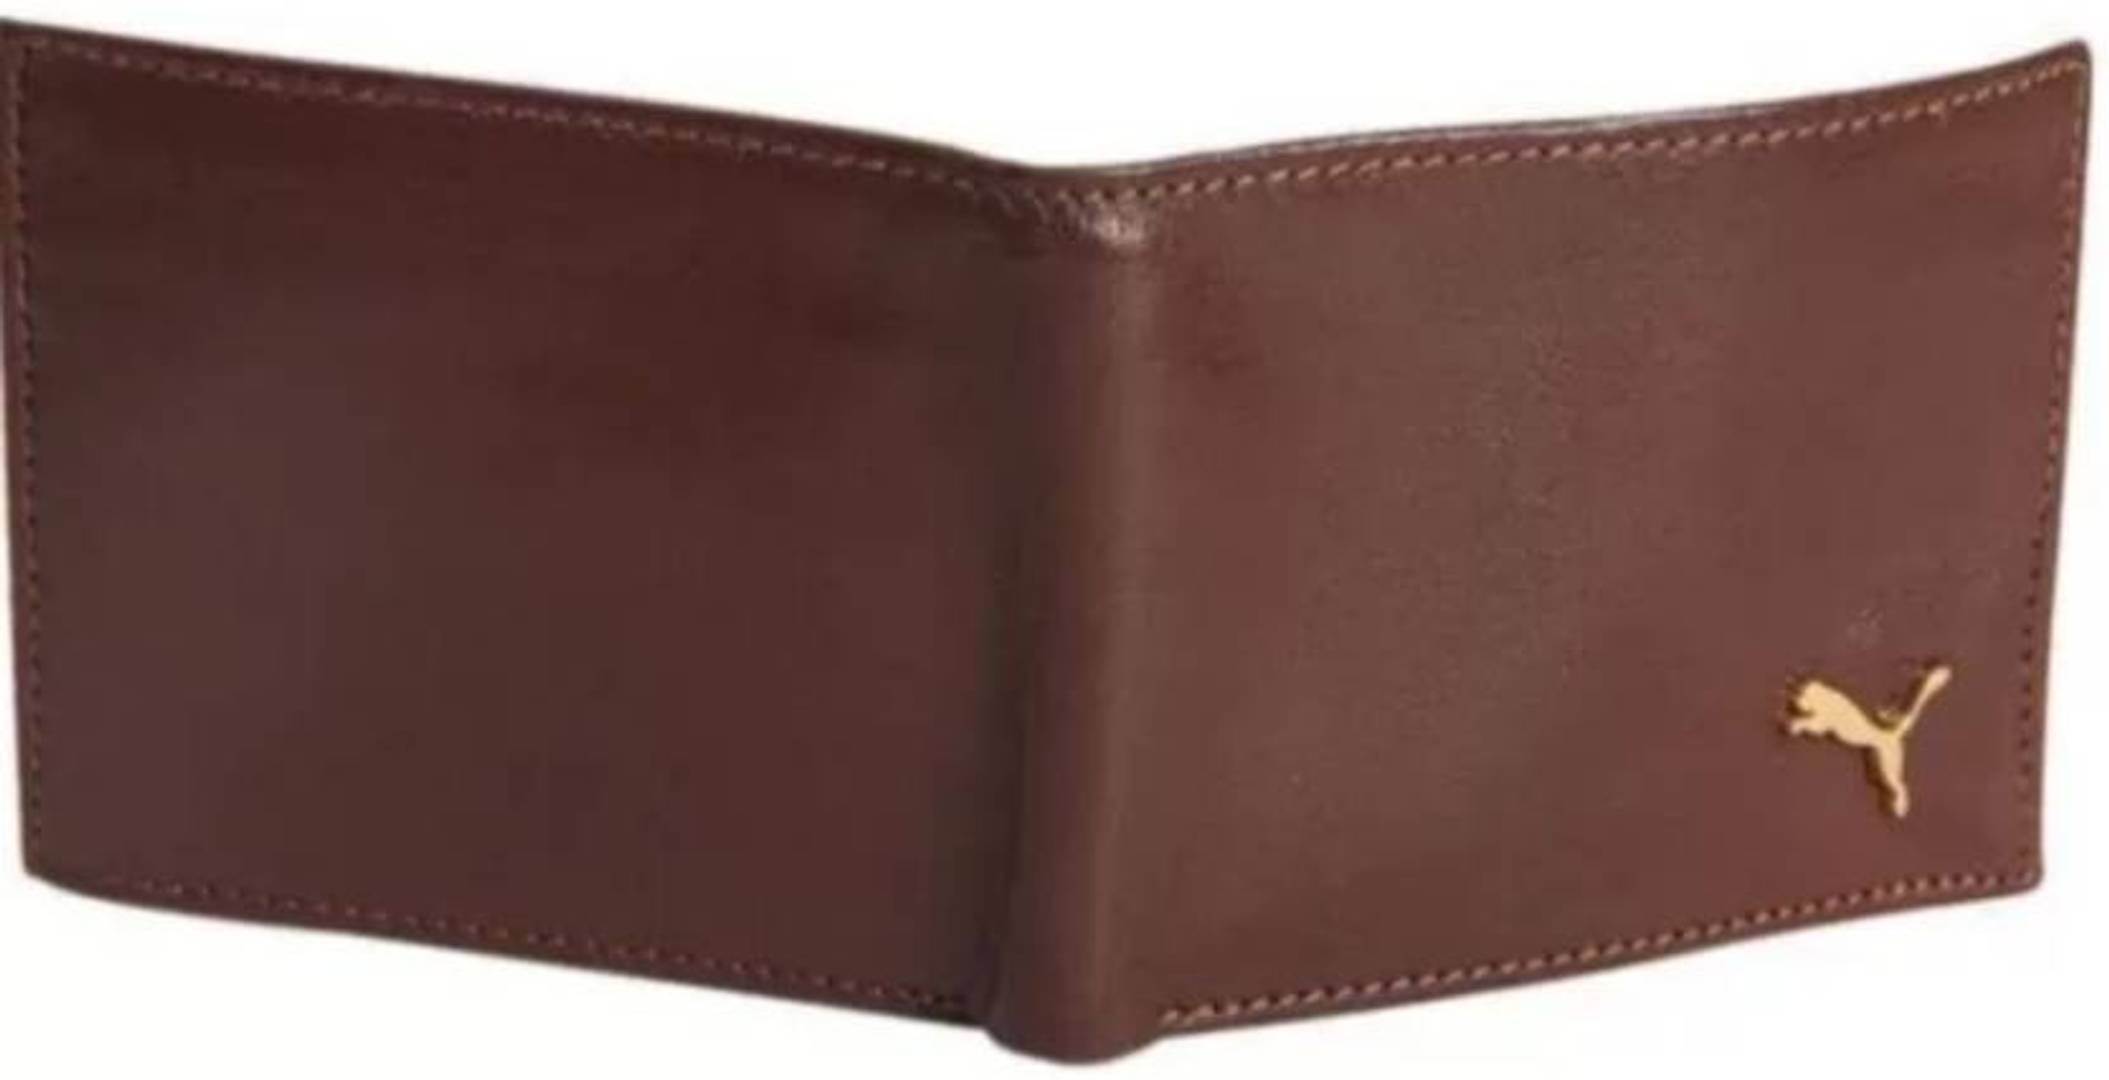 Stylish Brown Wallet At Lowest Price